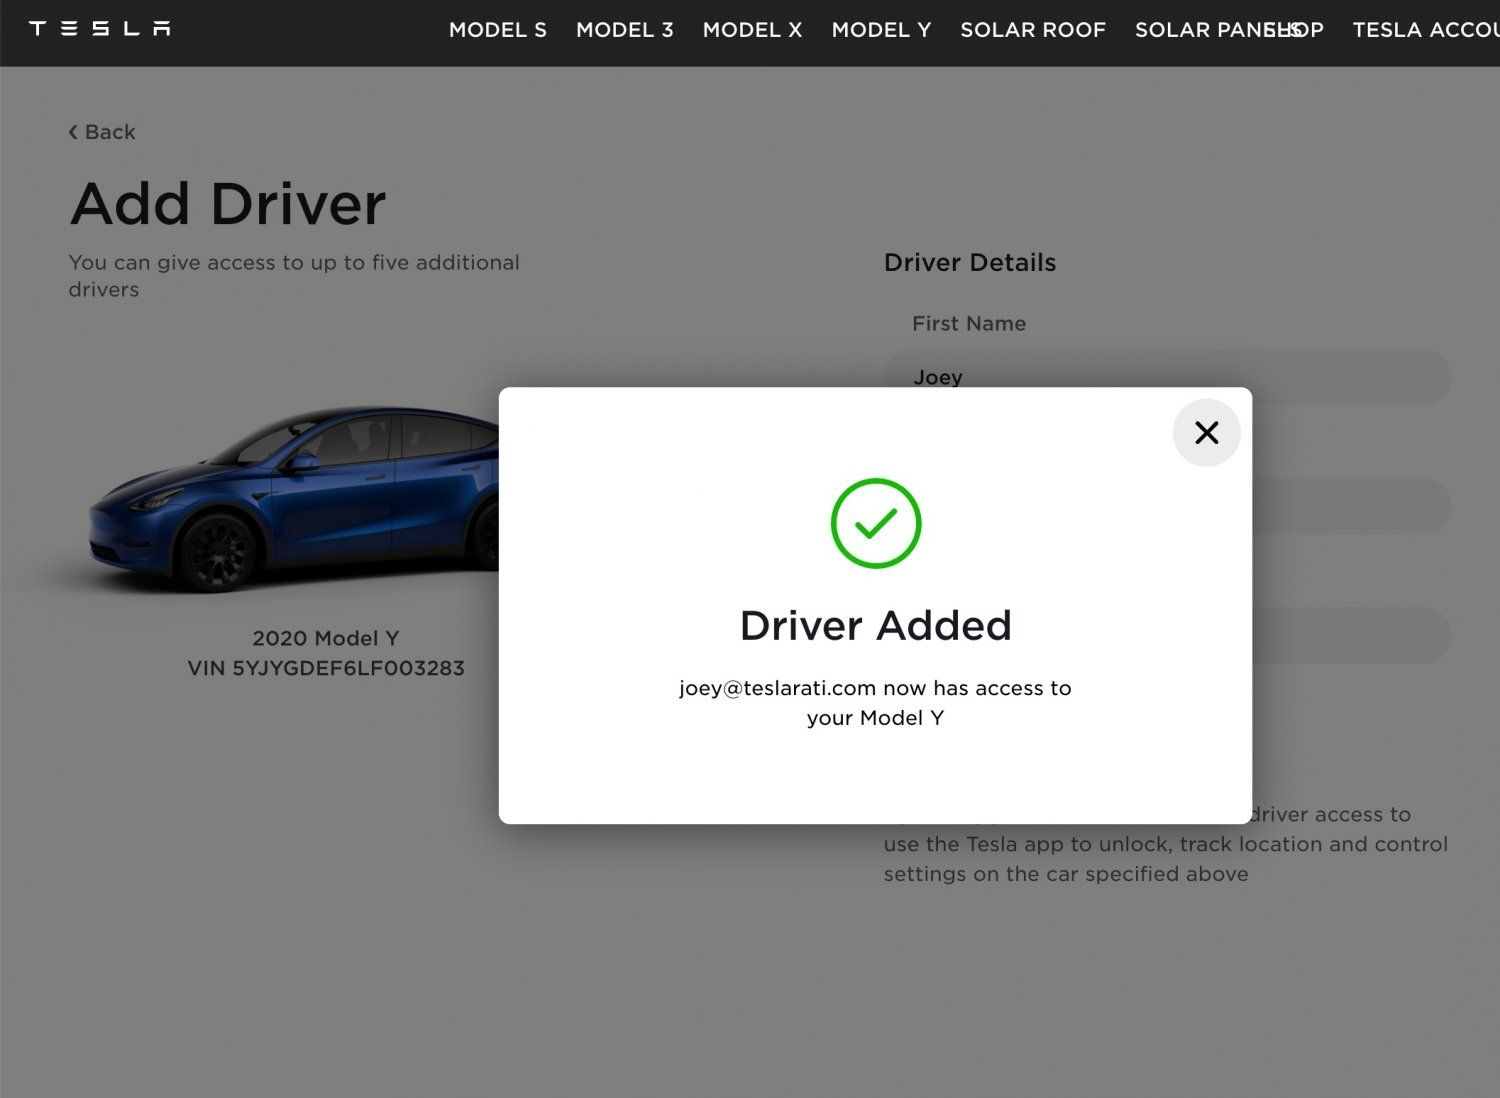 This New Tesla Feature Will Let Someone Remote In Drive Your Car New Tesla Tesla Tesla Model S